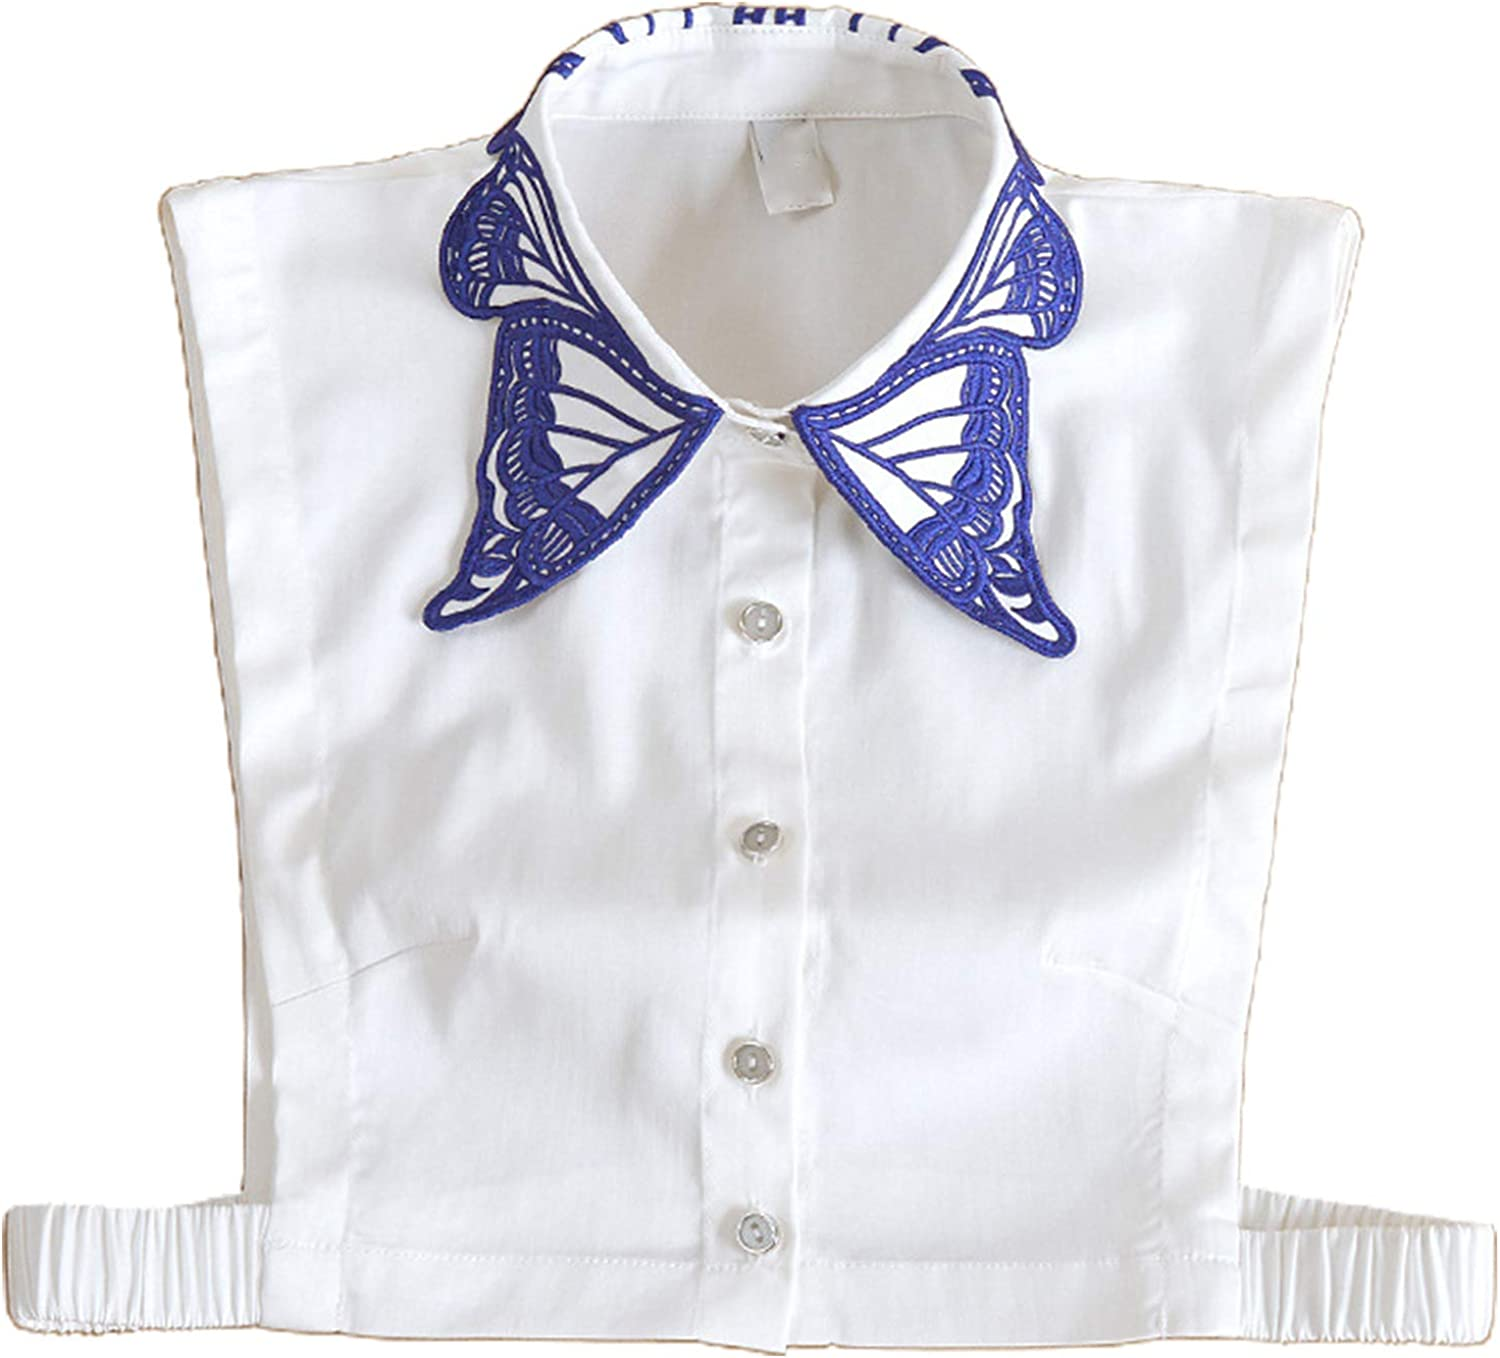 YOUSIKE Detachable Blouse, Women Butterfly Embroidery Lapel False Fake Collar Button Down Detachable Half Blouse Top Dickey Autumn Sweater Decorative Clothing Accessories